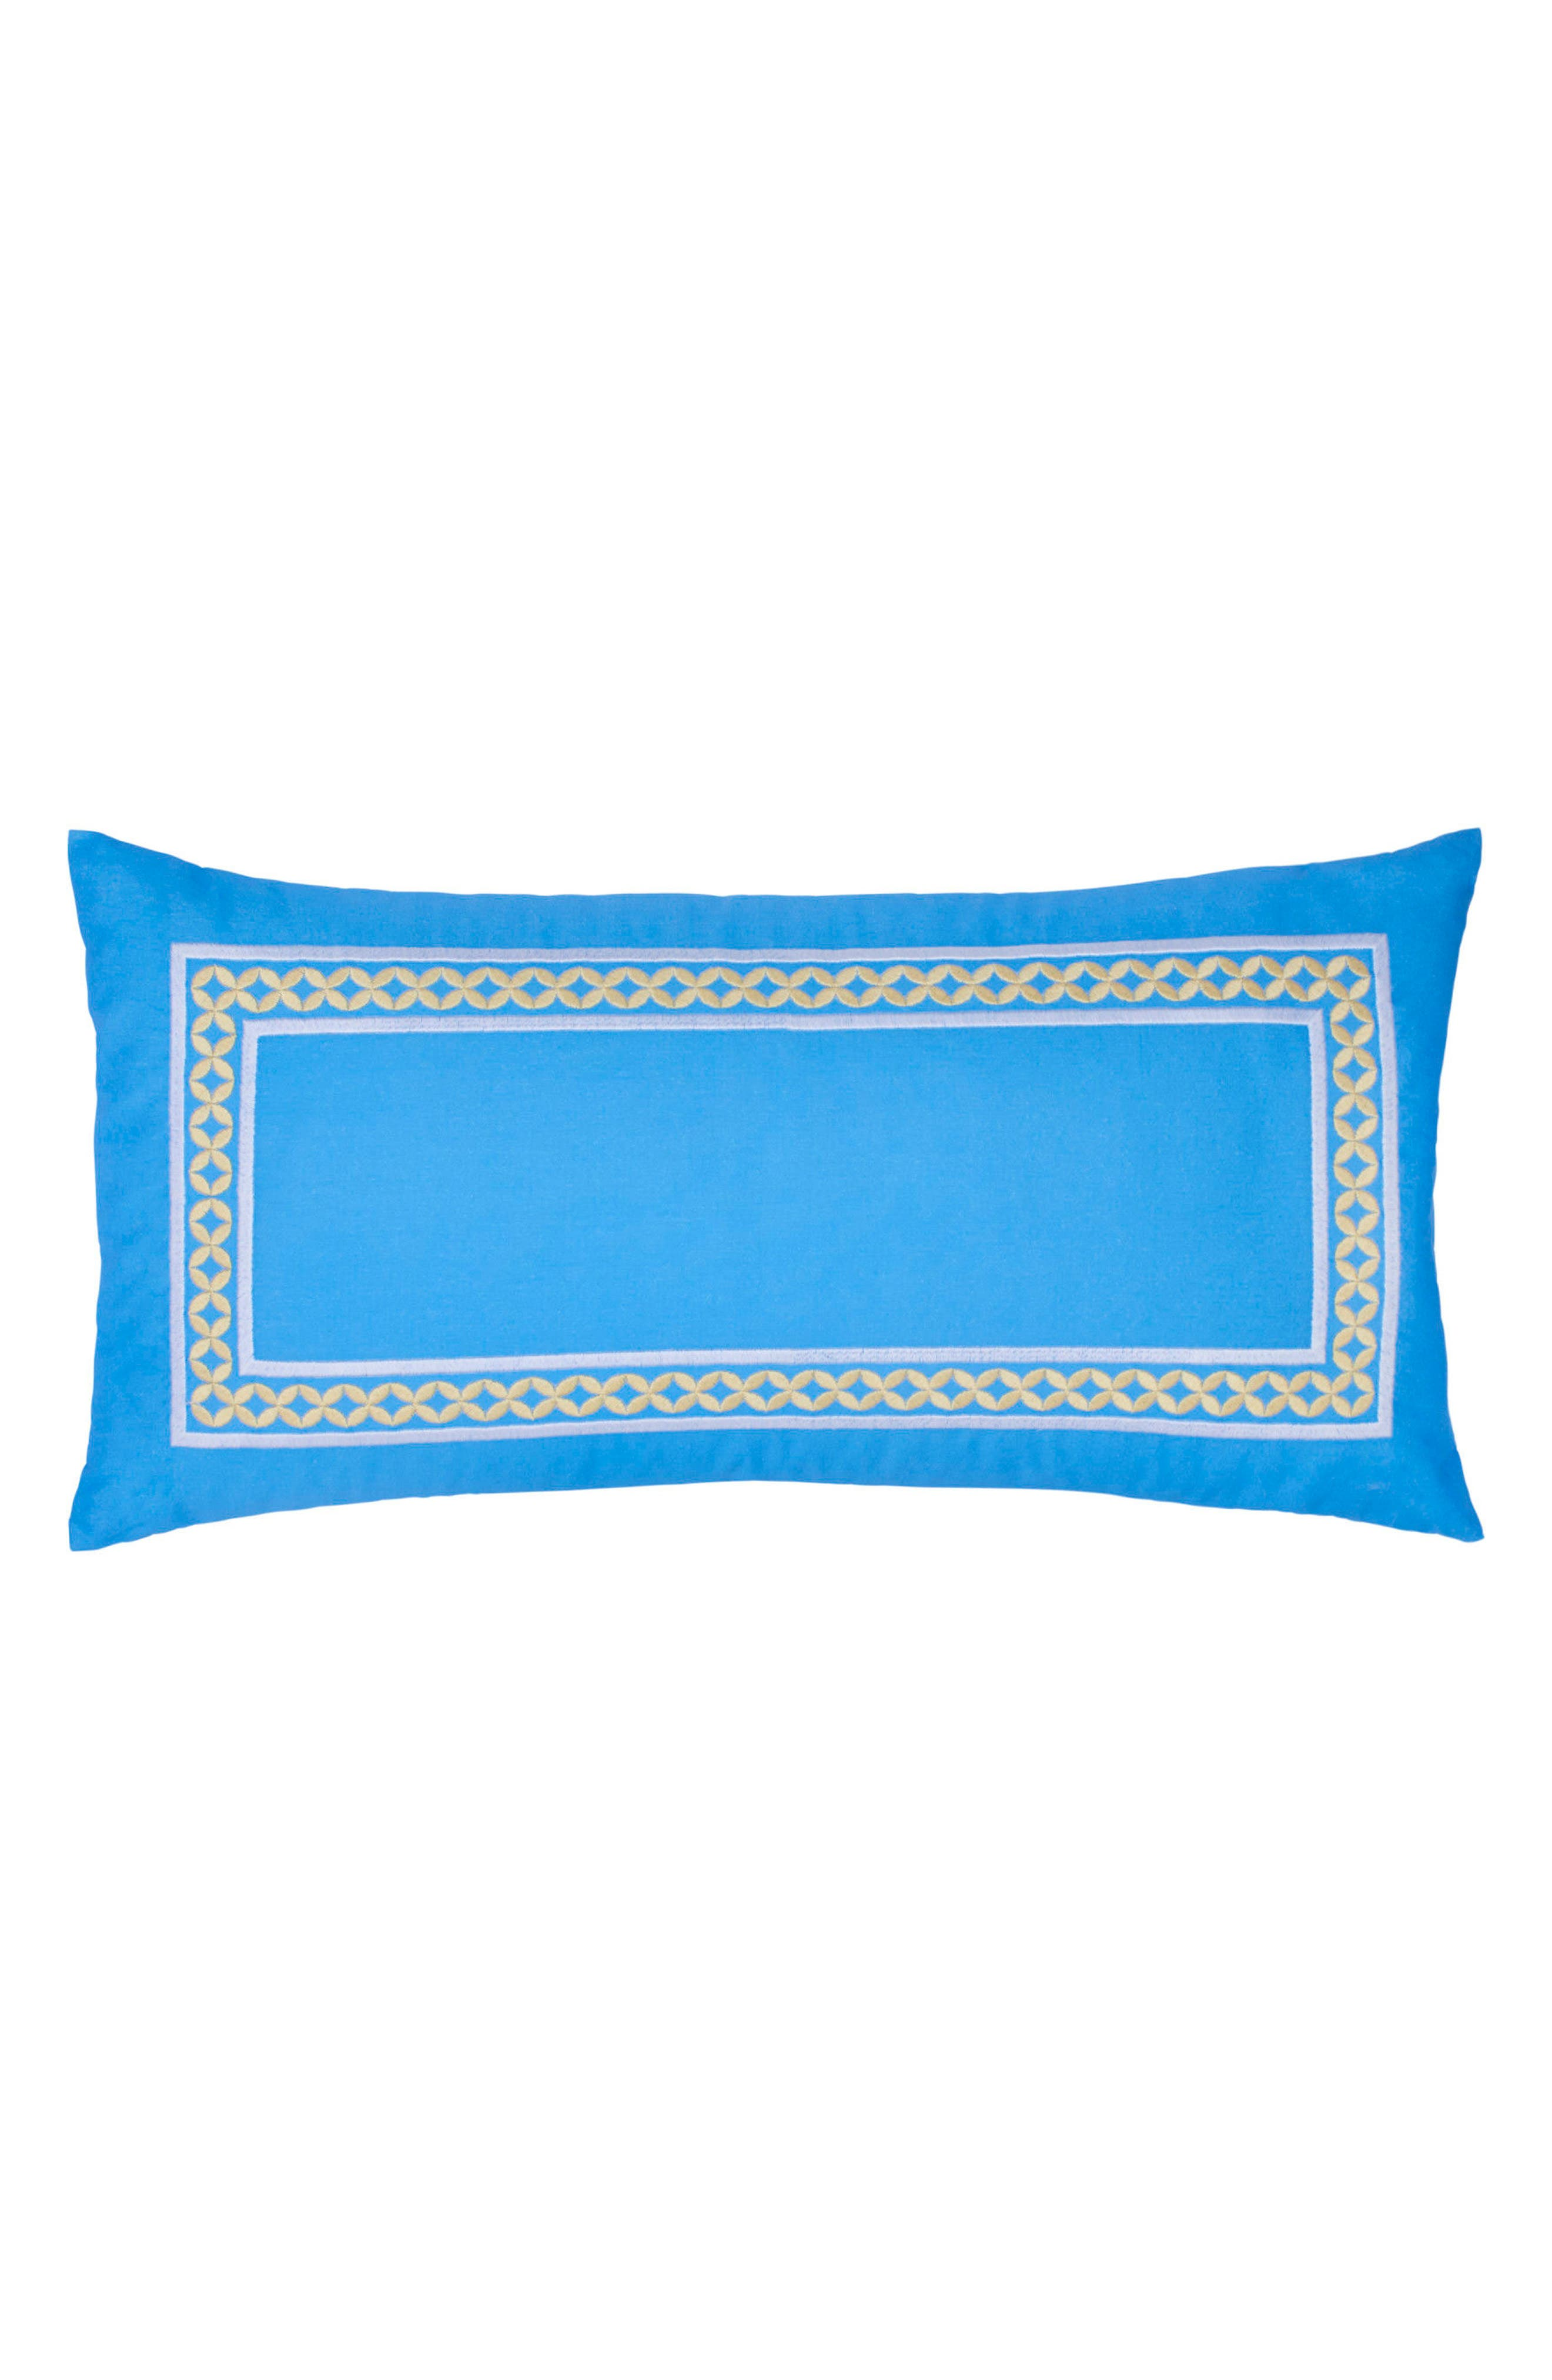 Sailgate Embroidered Border Accent Pillow,                         Main,                         color, 400